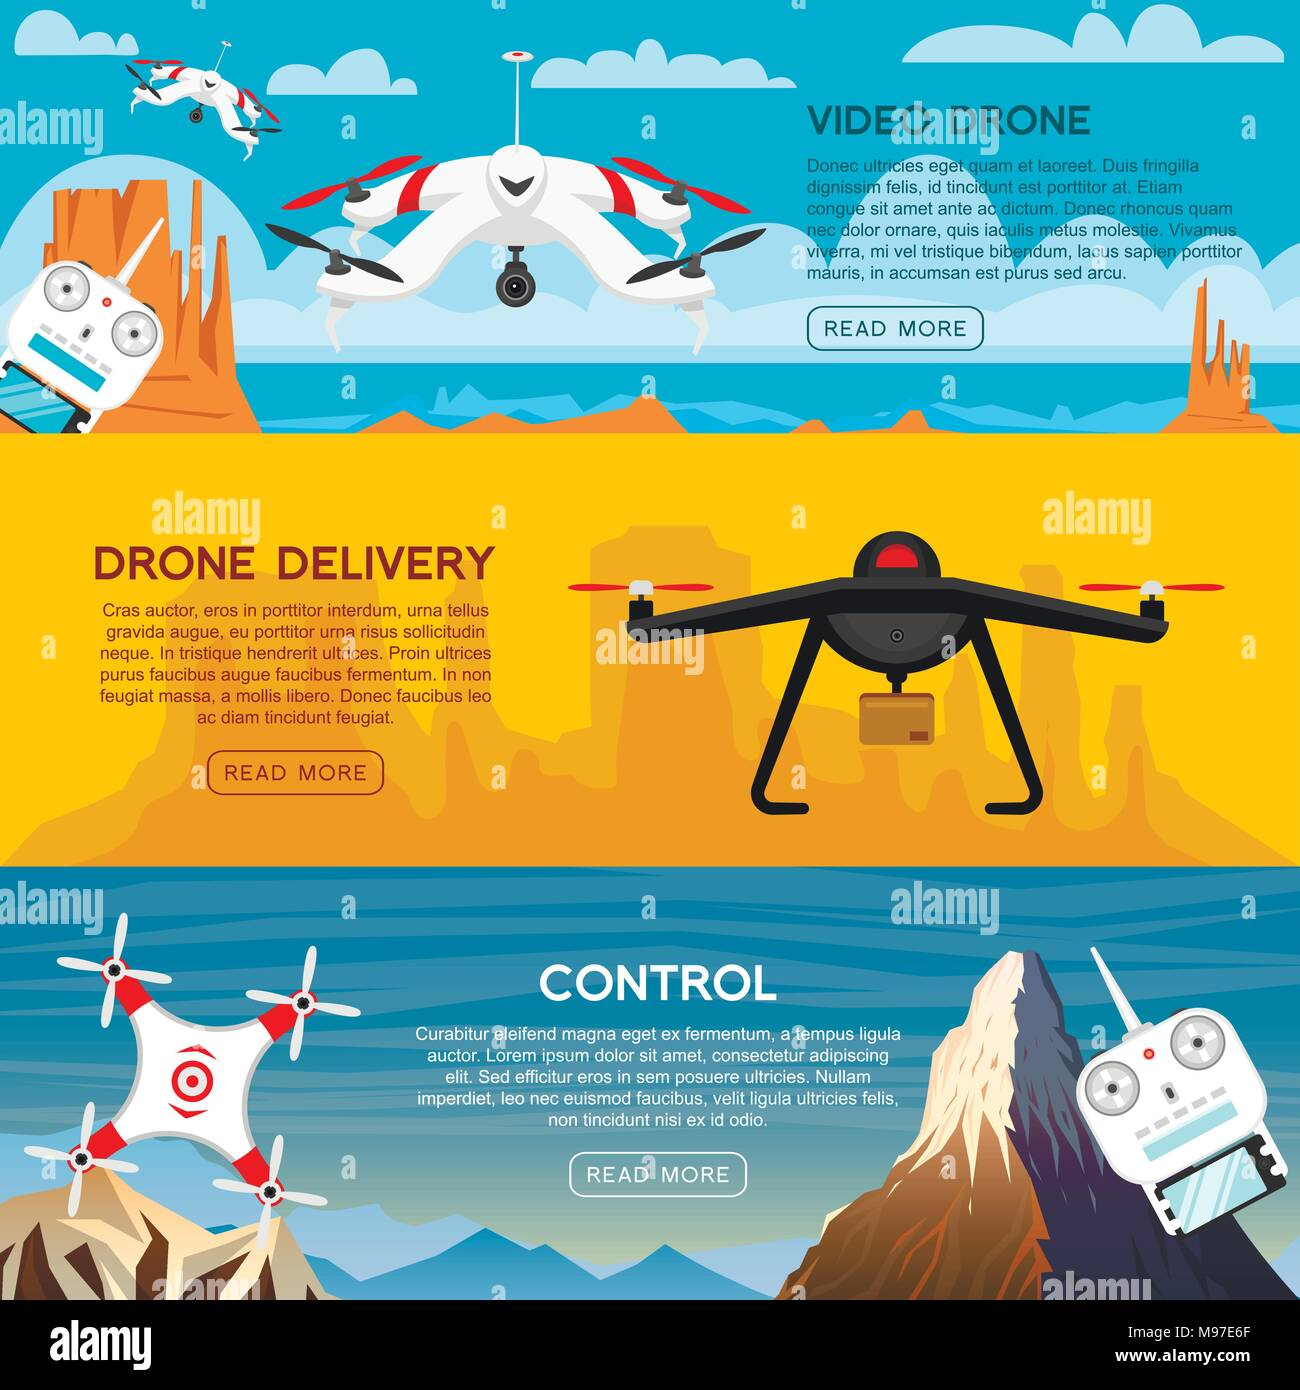 Modern Air Drones For Card And Remote Control Video And Photo And Delivery Science And Technologies Radio Robot With Camera In The Air Innovative Systems Background Or Poster Stock Vector Image